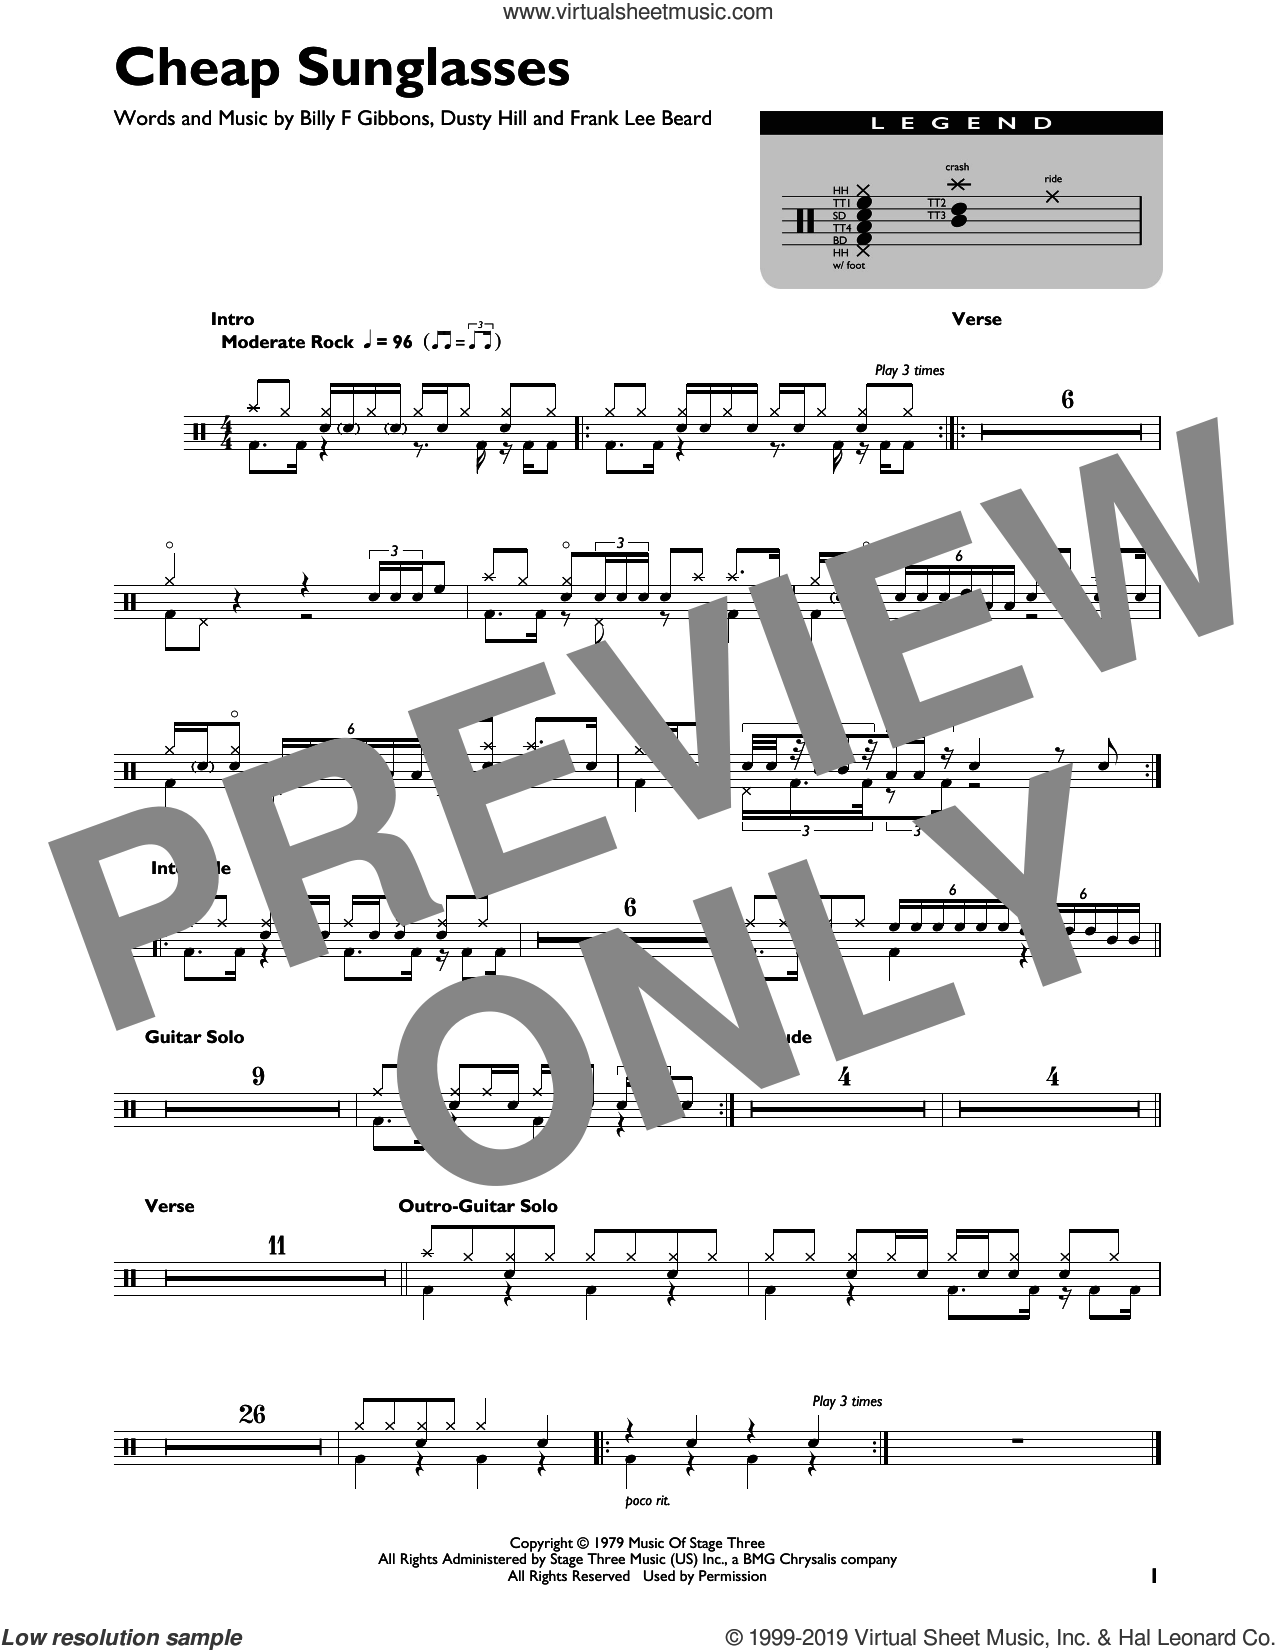 Cheap Sunglasses sheet music for drums (percussions) by ZZ Top, Billy Gibbons, Dusty Hill and Frank Beard, intermediate skill level